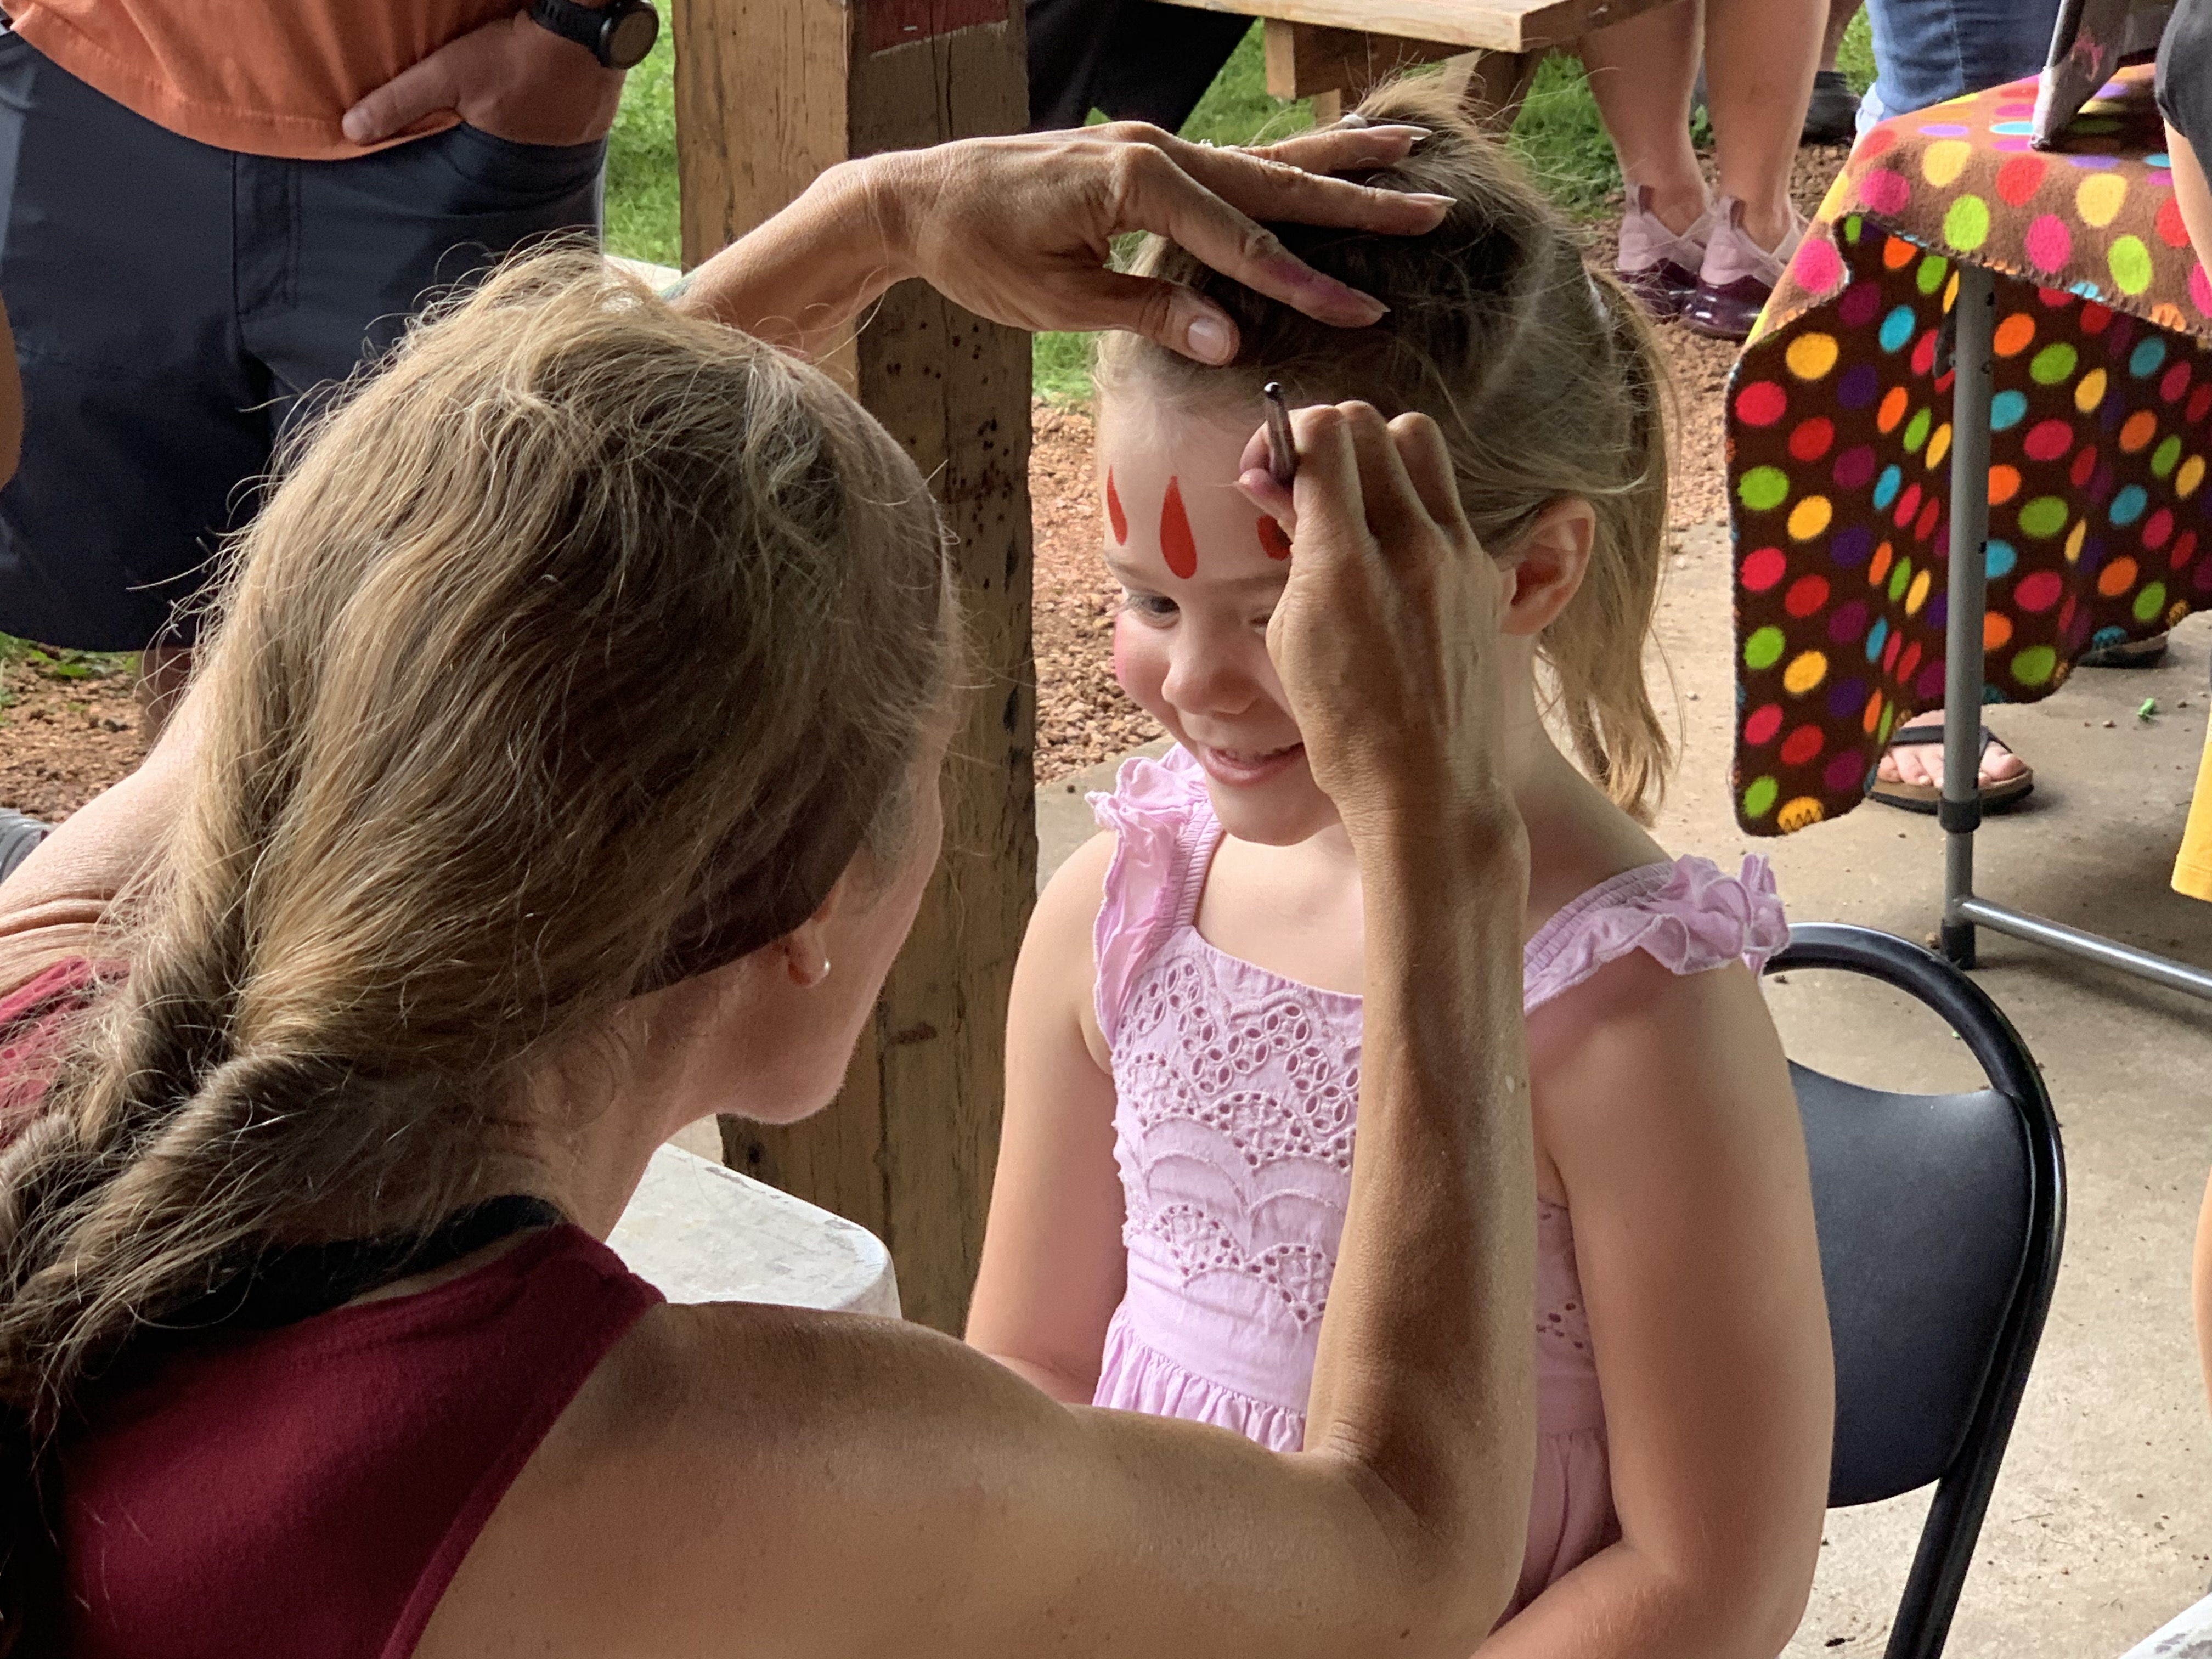 Tigerton resident Lilly Eckardt is all smiles as she gets her face painted during Tigerton Lumberjack Days at Legion Park on Aug. 29.Luke Reimer | NEW Media